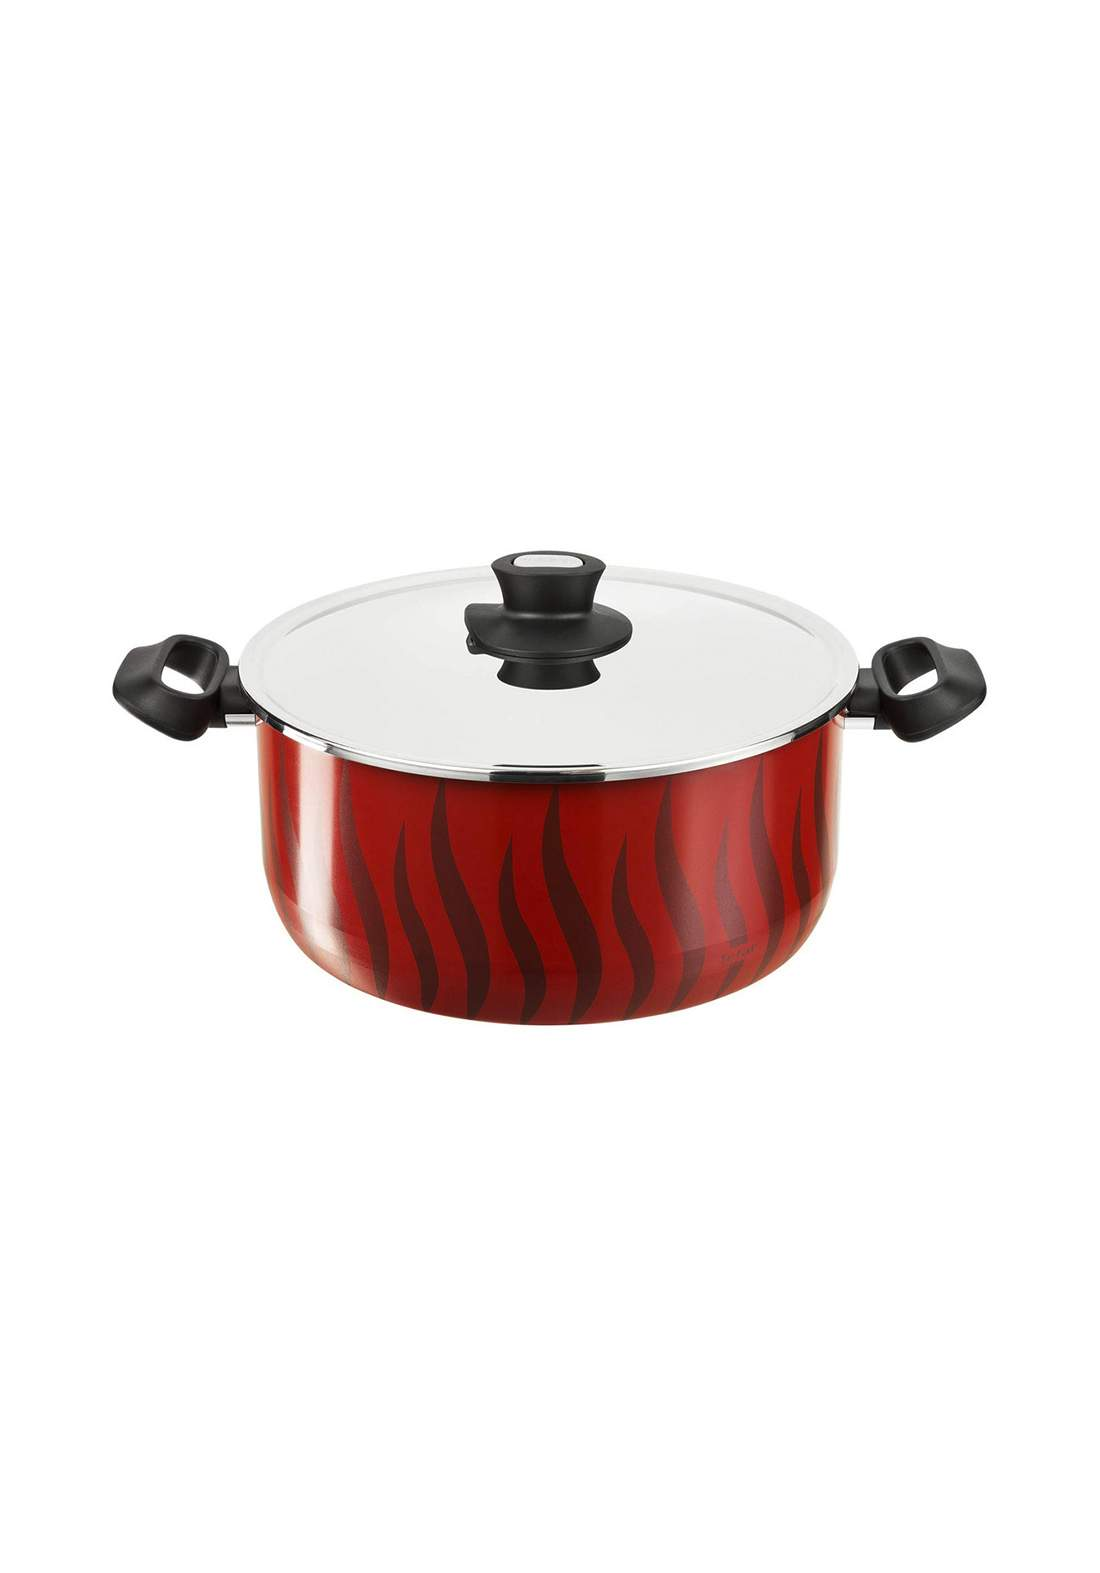 Tefal C3045283 P&P Alu Ns Ptfe New G6 Tempo Flame - Dutch Oven 26 + SS قدر